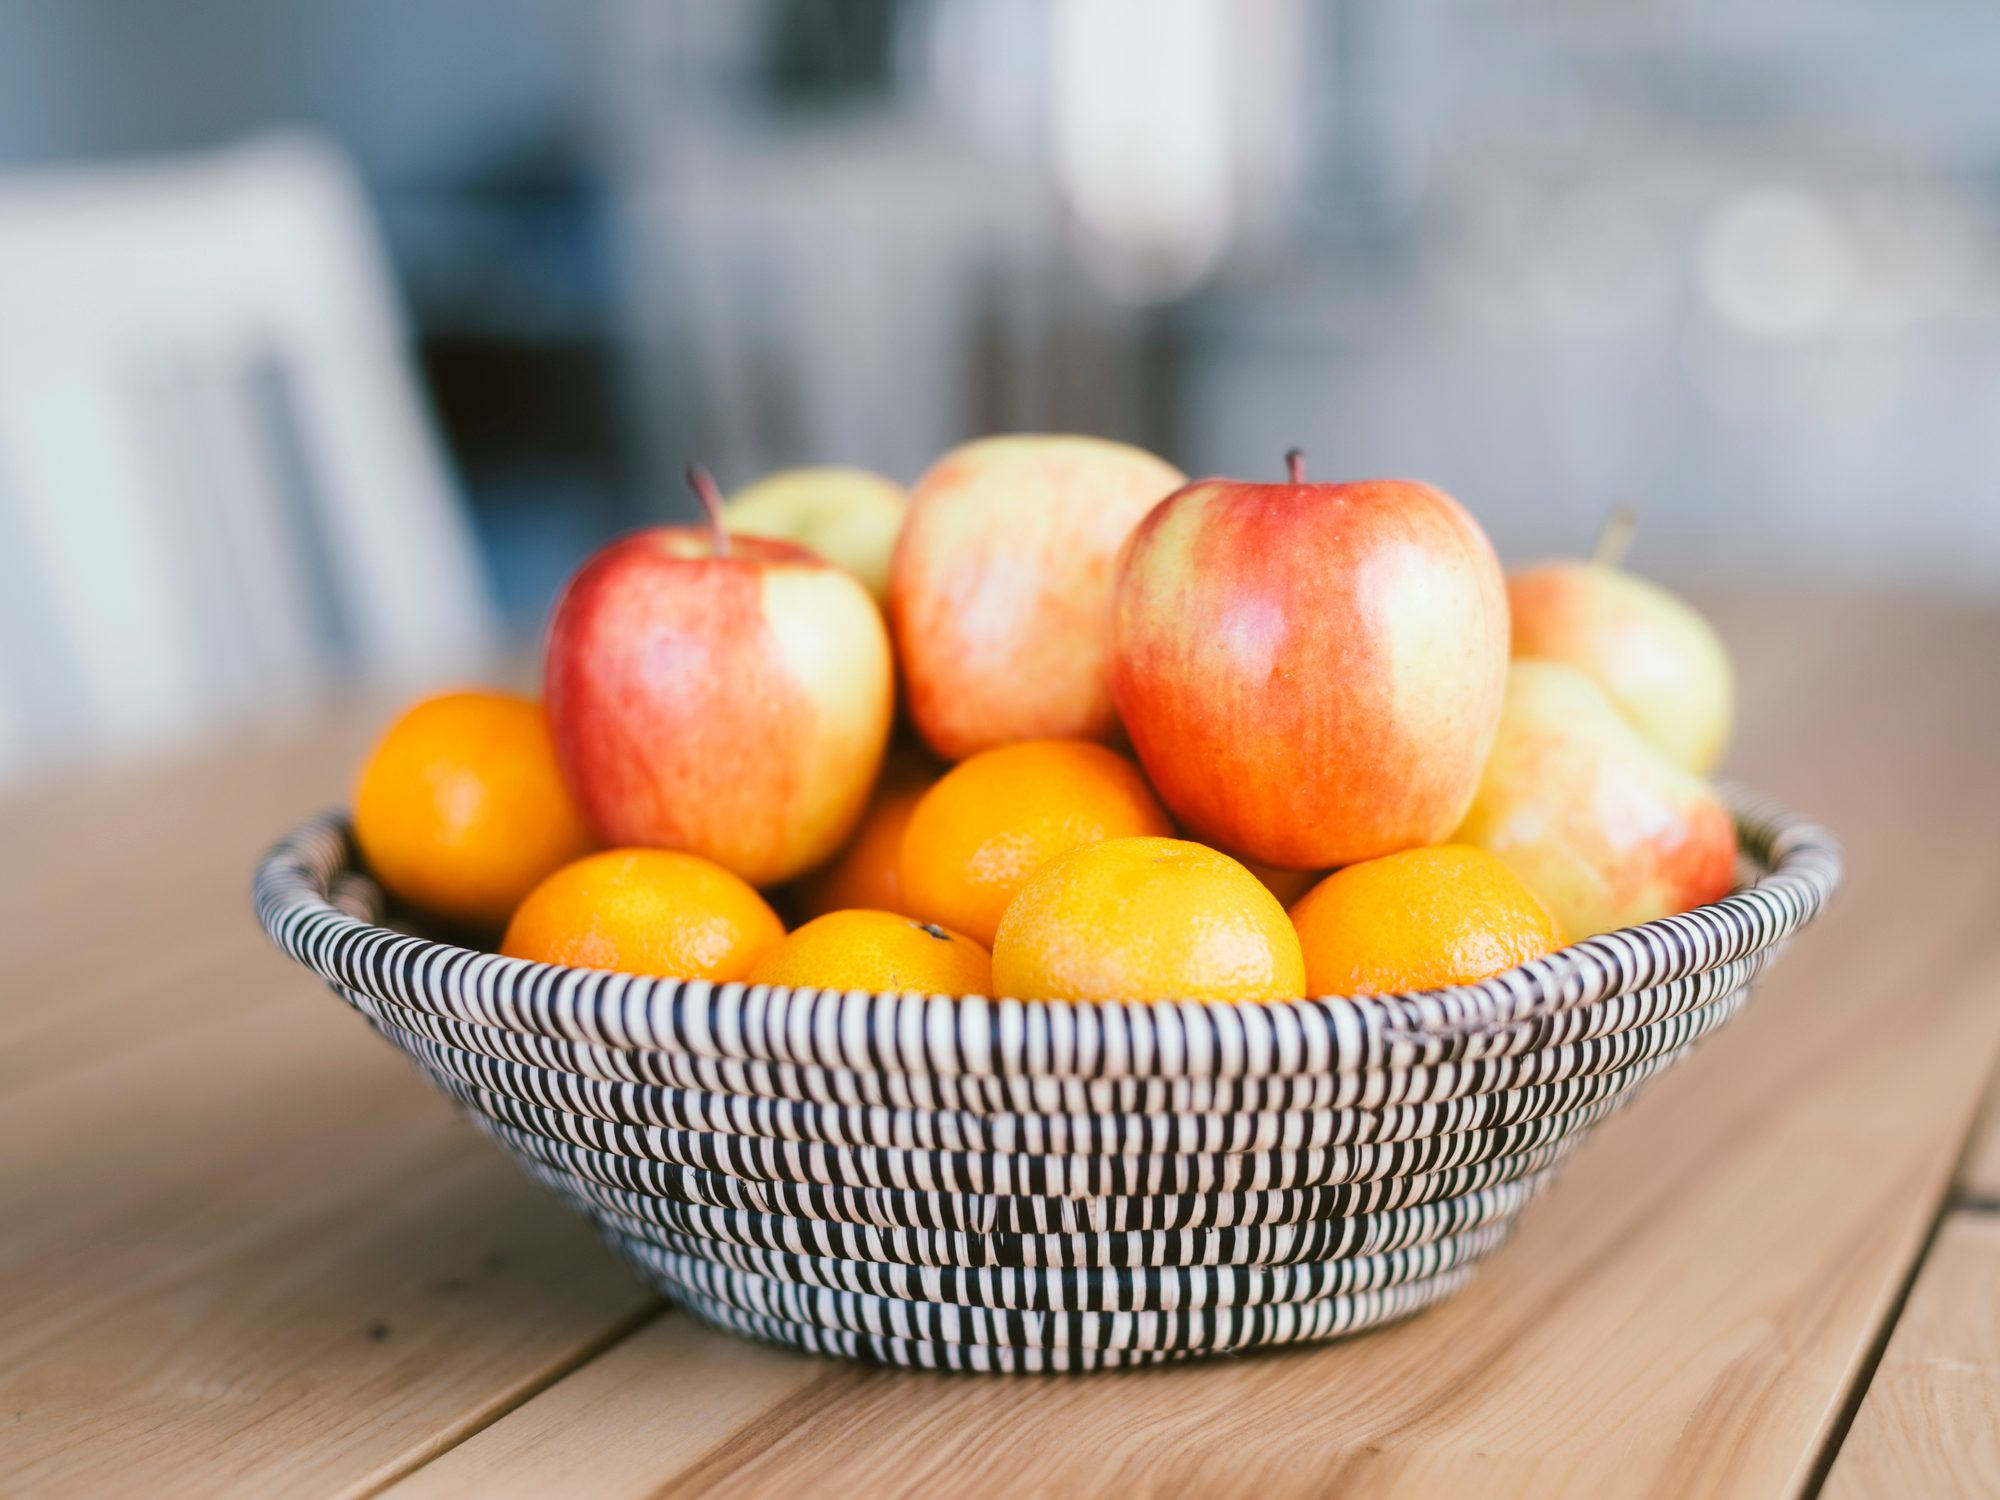 fruit bowl on table